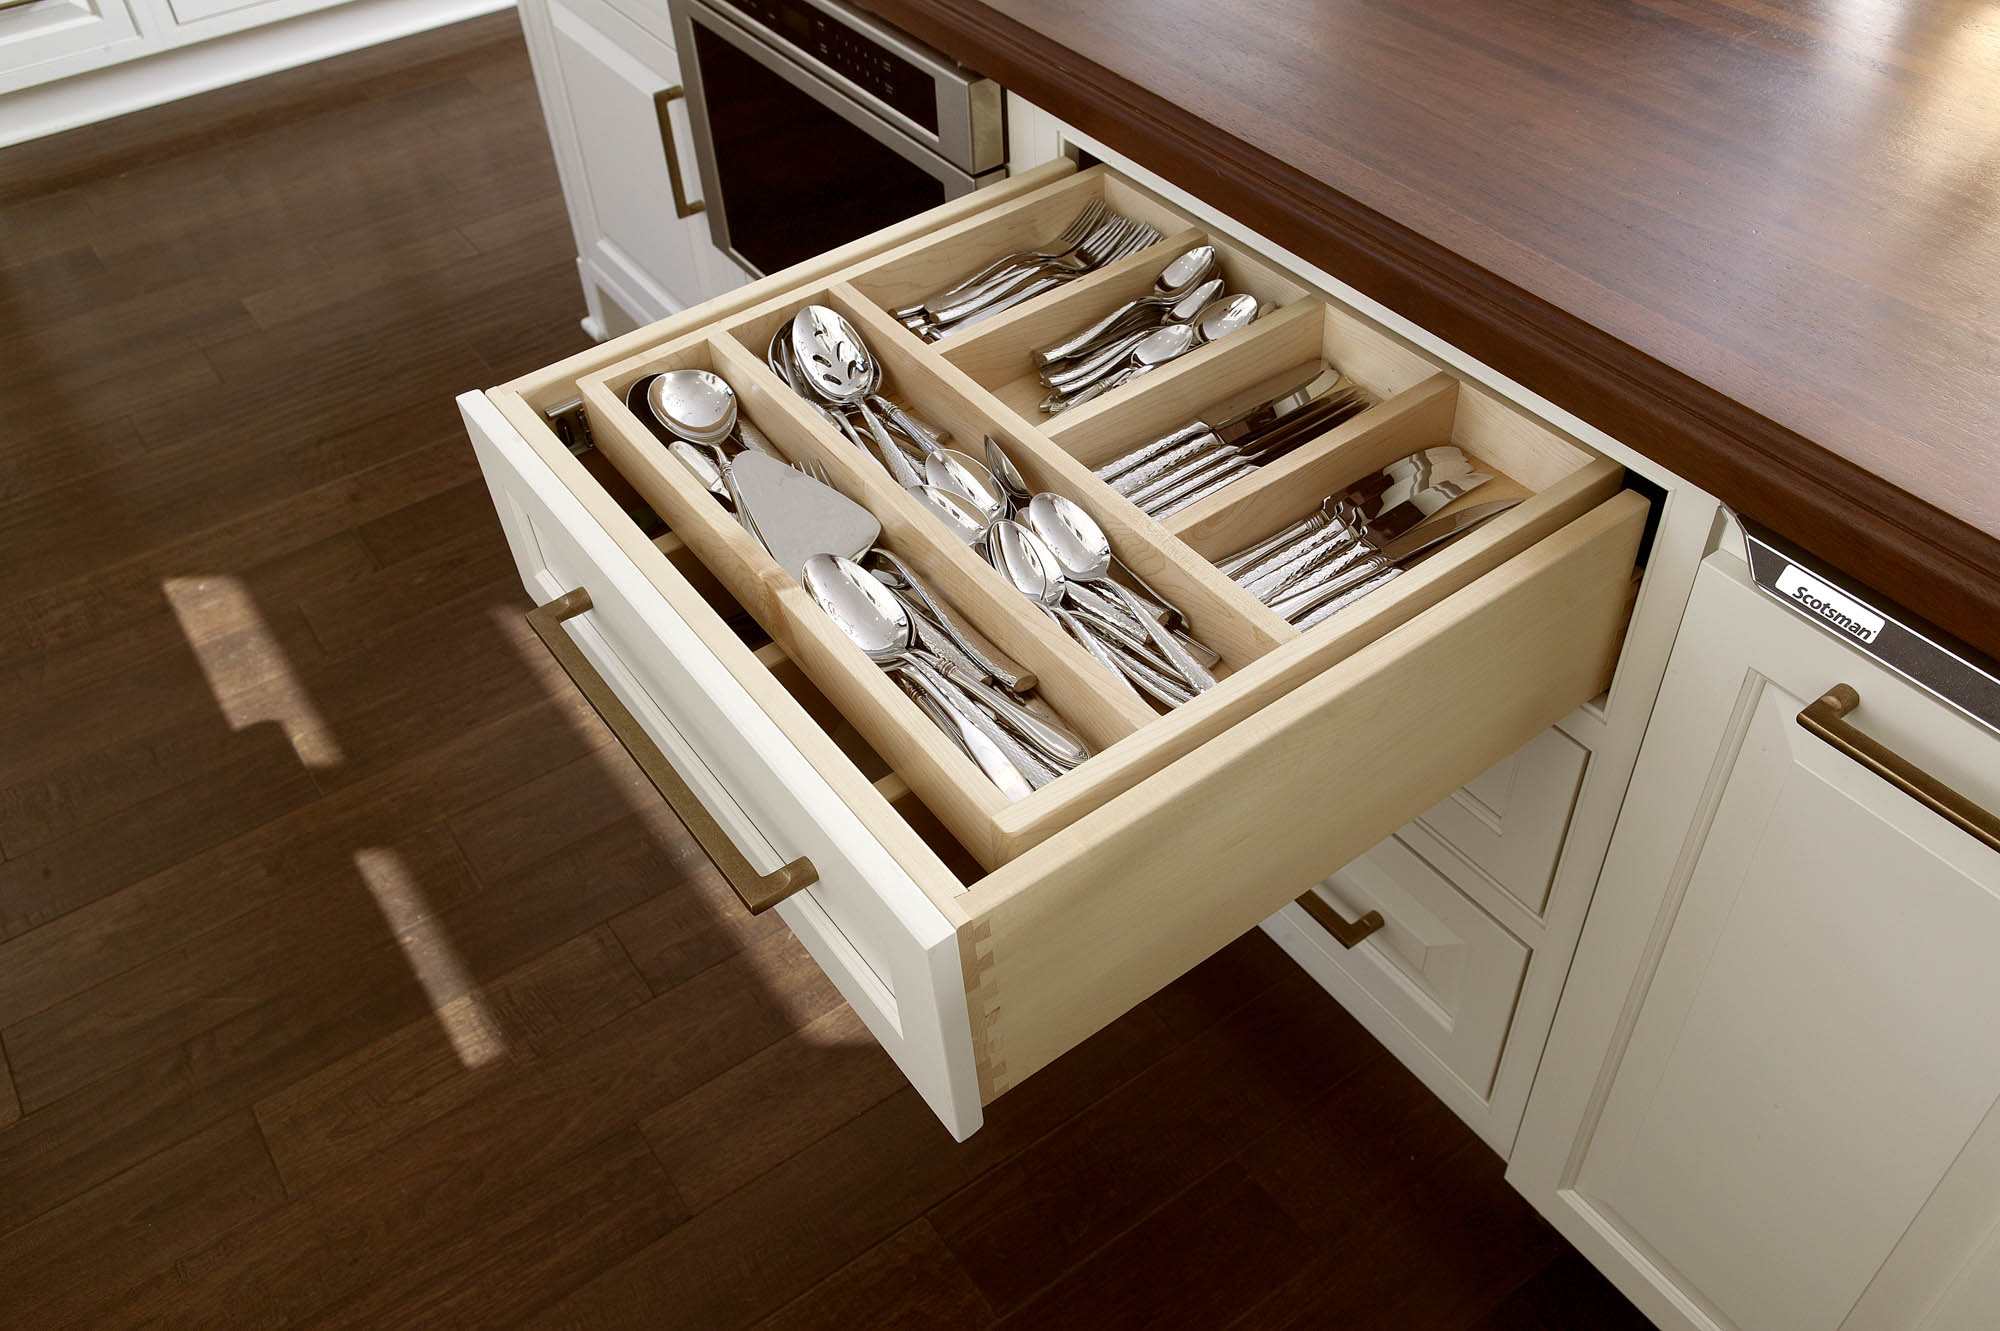 Painted kitchen island with cutlery drawer in Soft Cream by Showplace Cabinetry